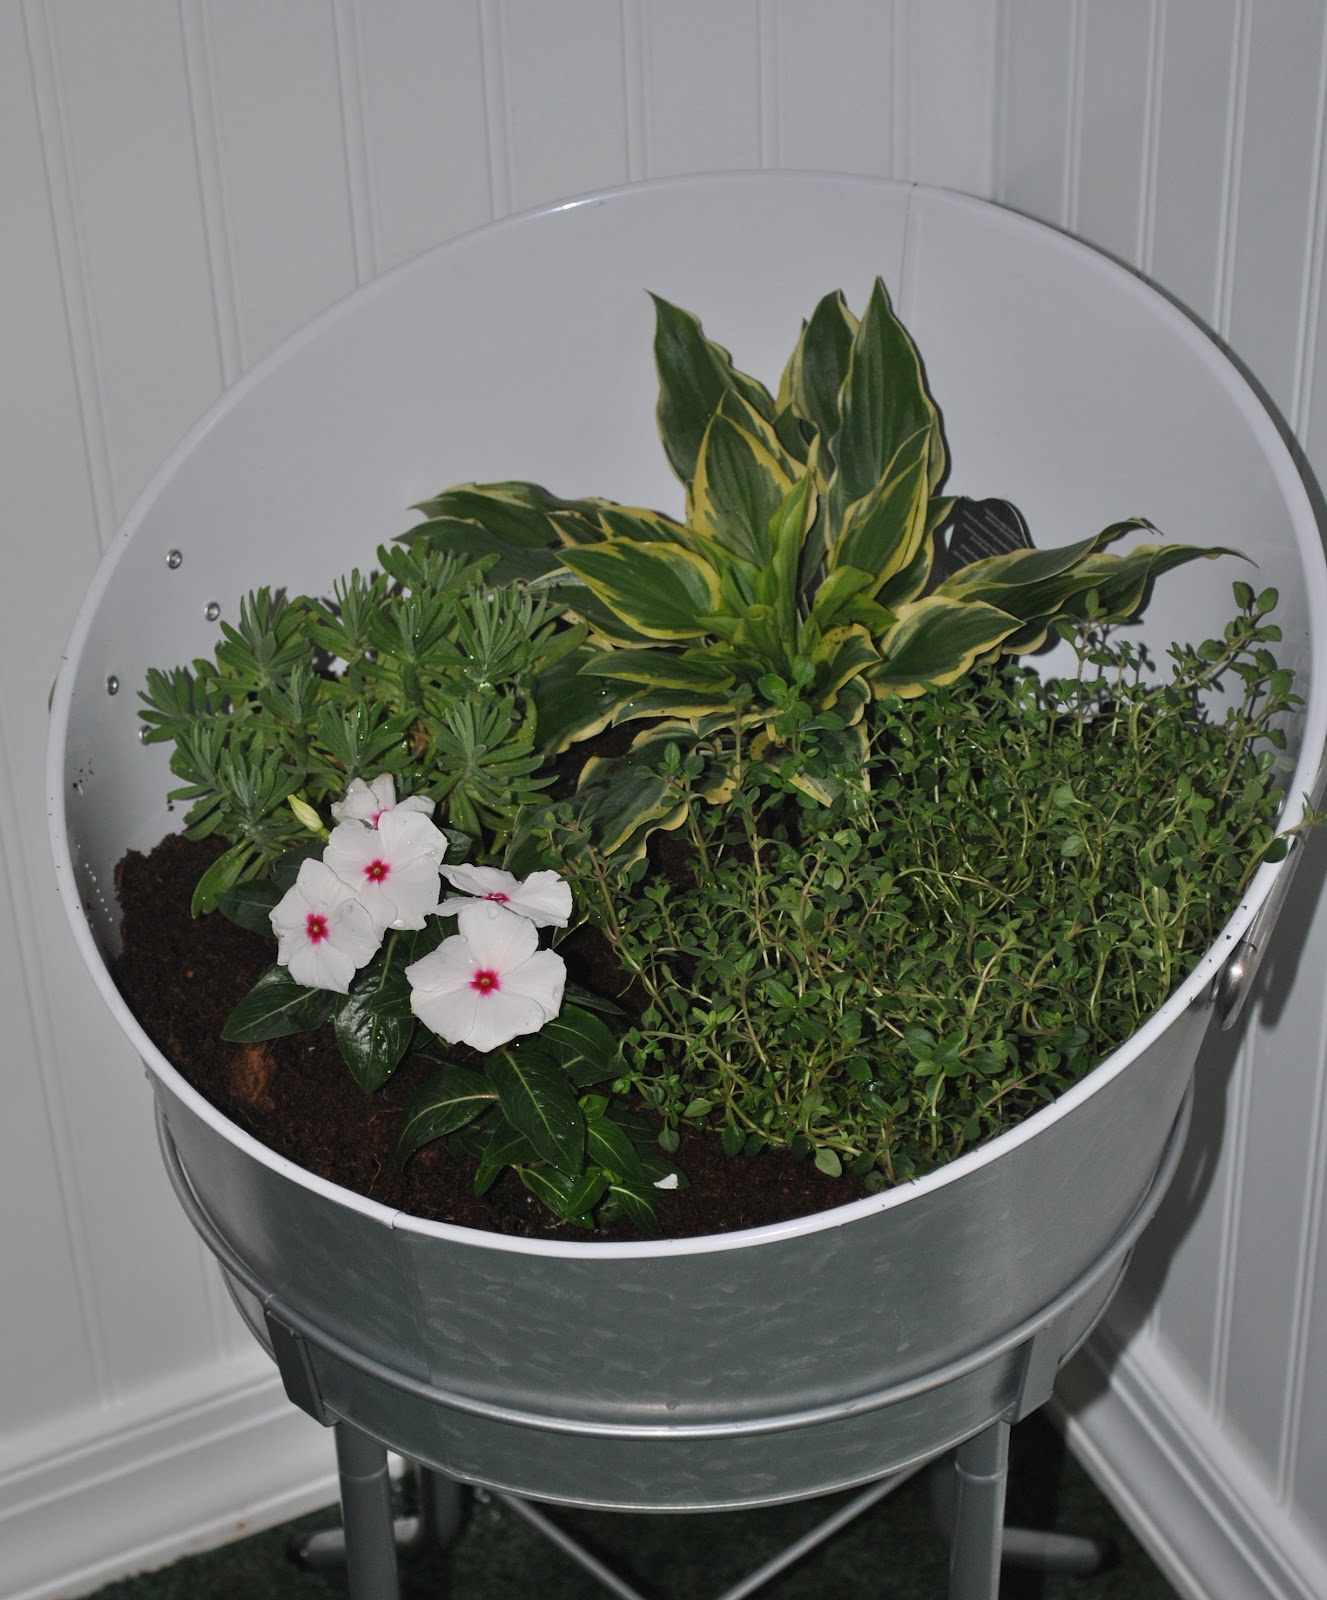 Iu0027m Not Usually One To Decorate For The Seasons, But When I Saw This Idea  Of A Mini Indoor Garden On The Inspired Room, I Knew I Had To Give It ...